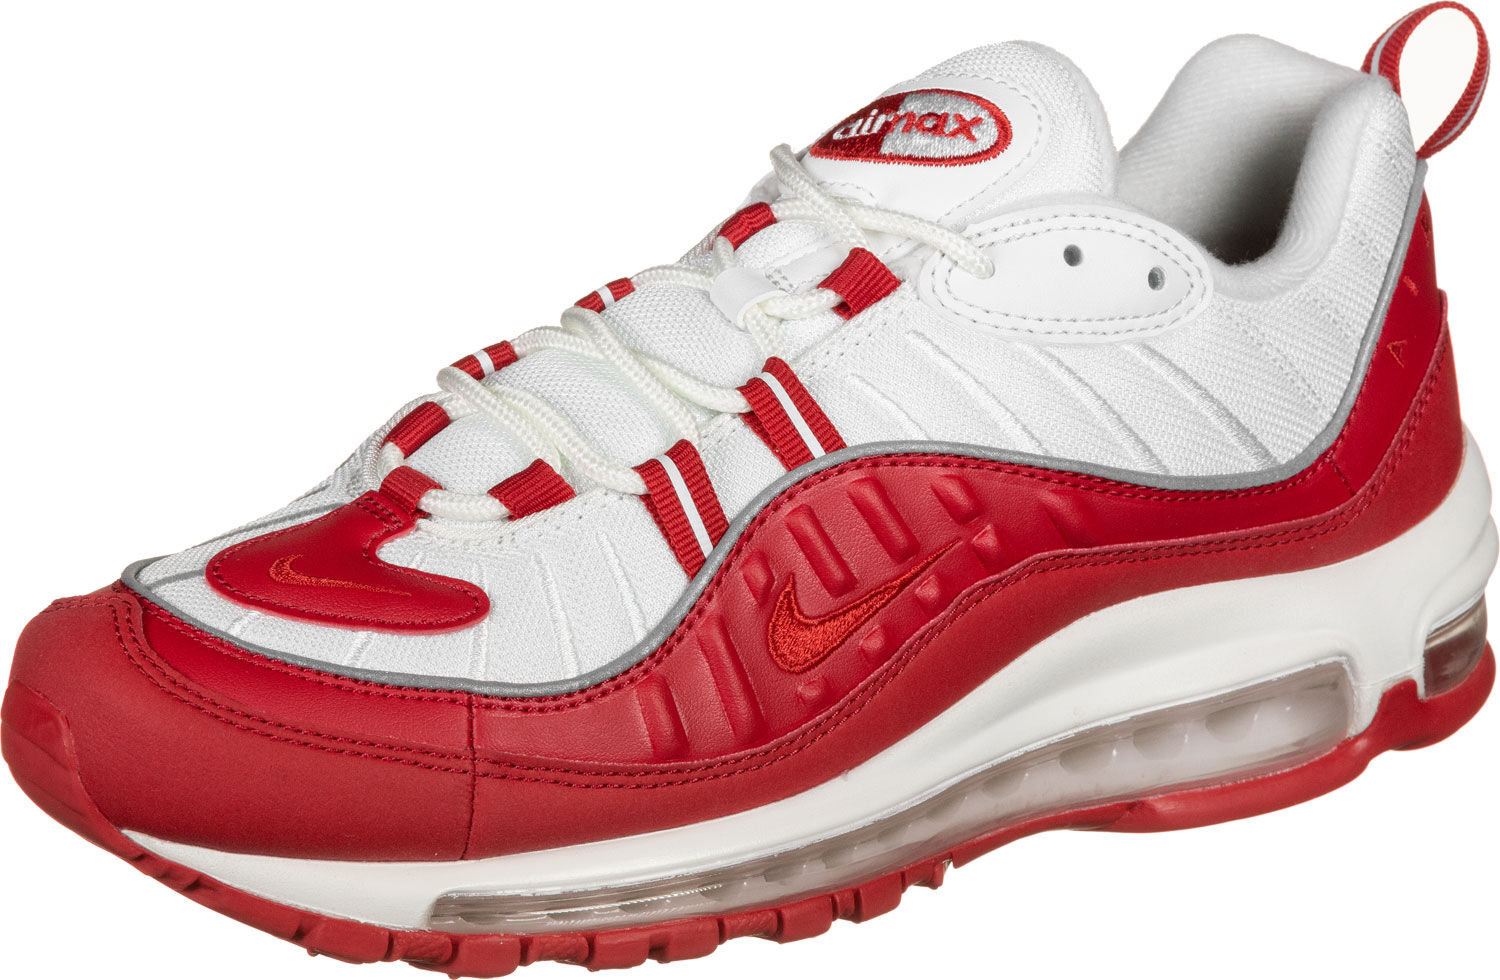 Air Max 98 Baskets low Hommes chez Stylefile